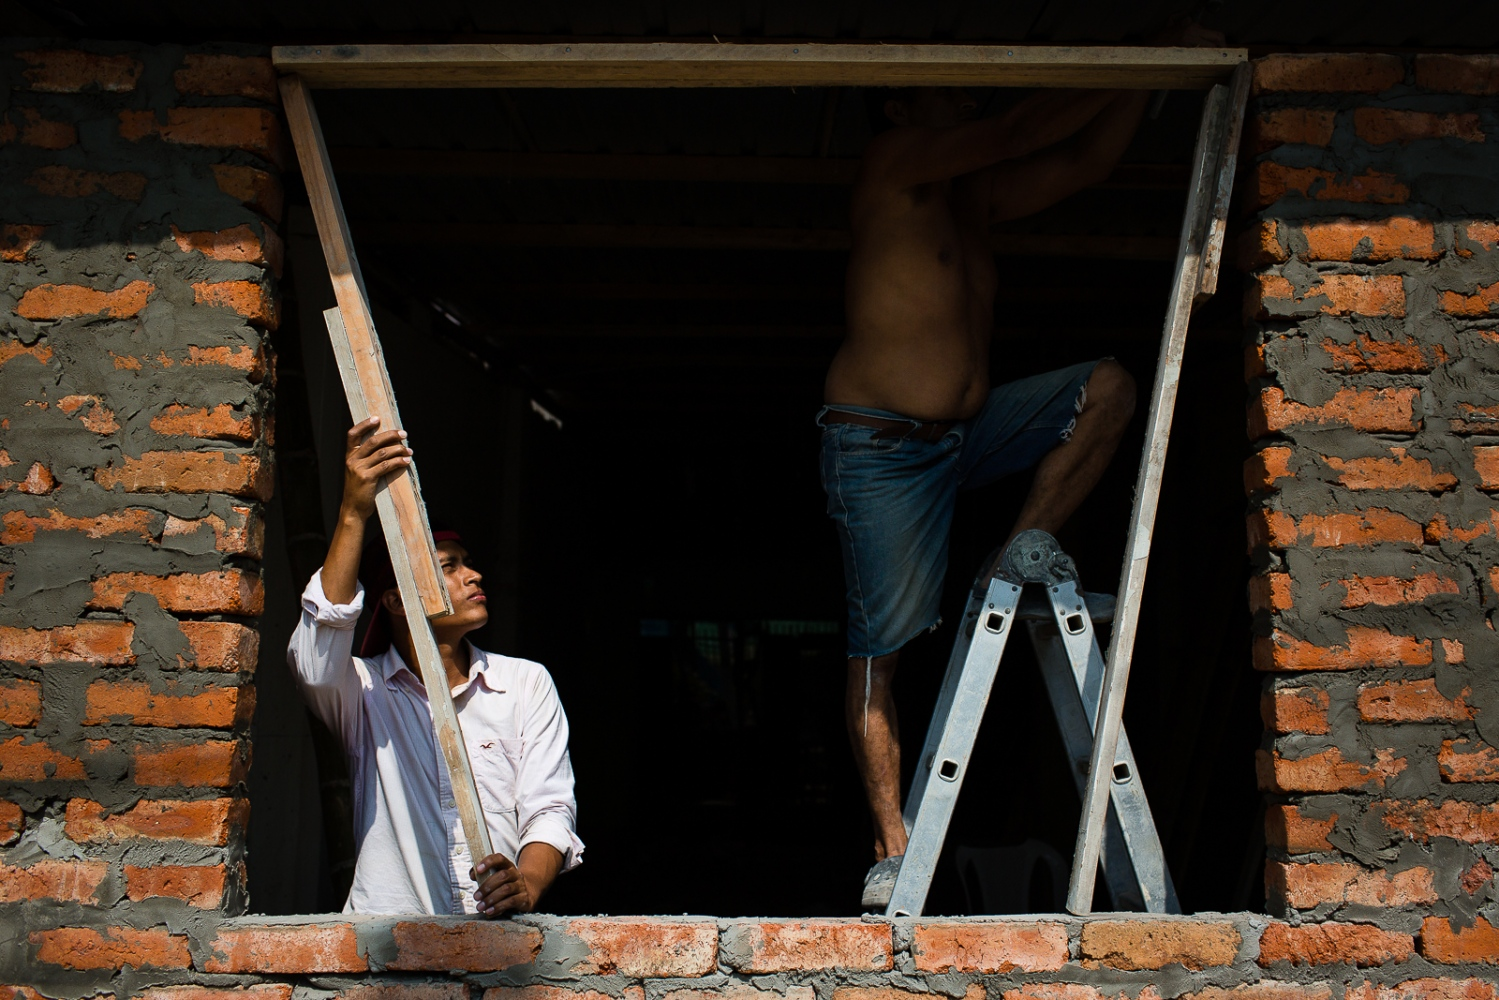 A son helps his father to rebuild a window of their home in Bahia de Caráquez. Many people don't believe they will get any Government help, so they have started to rebuild their houses by themselves.